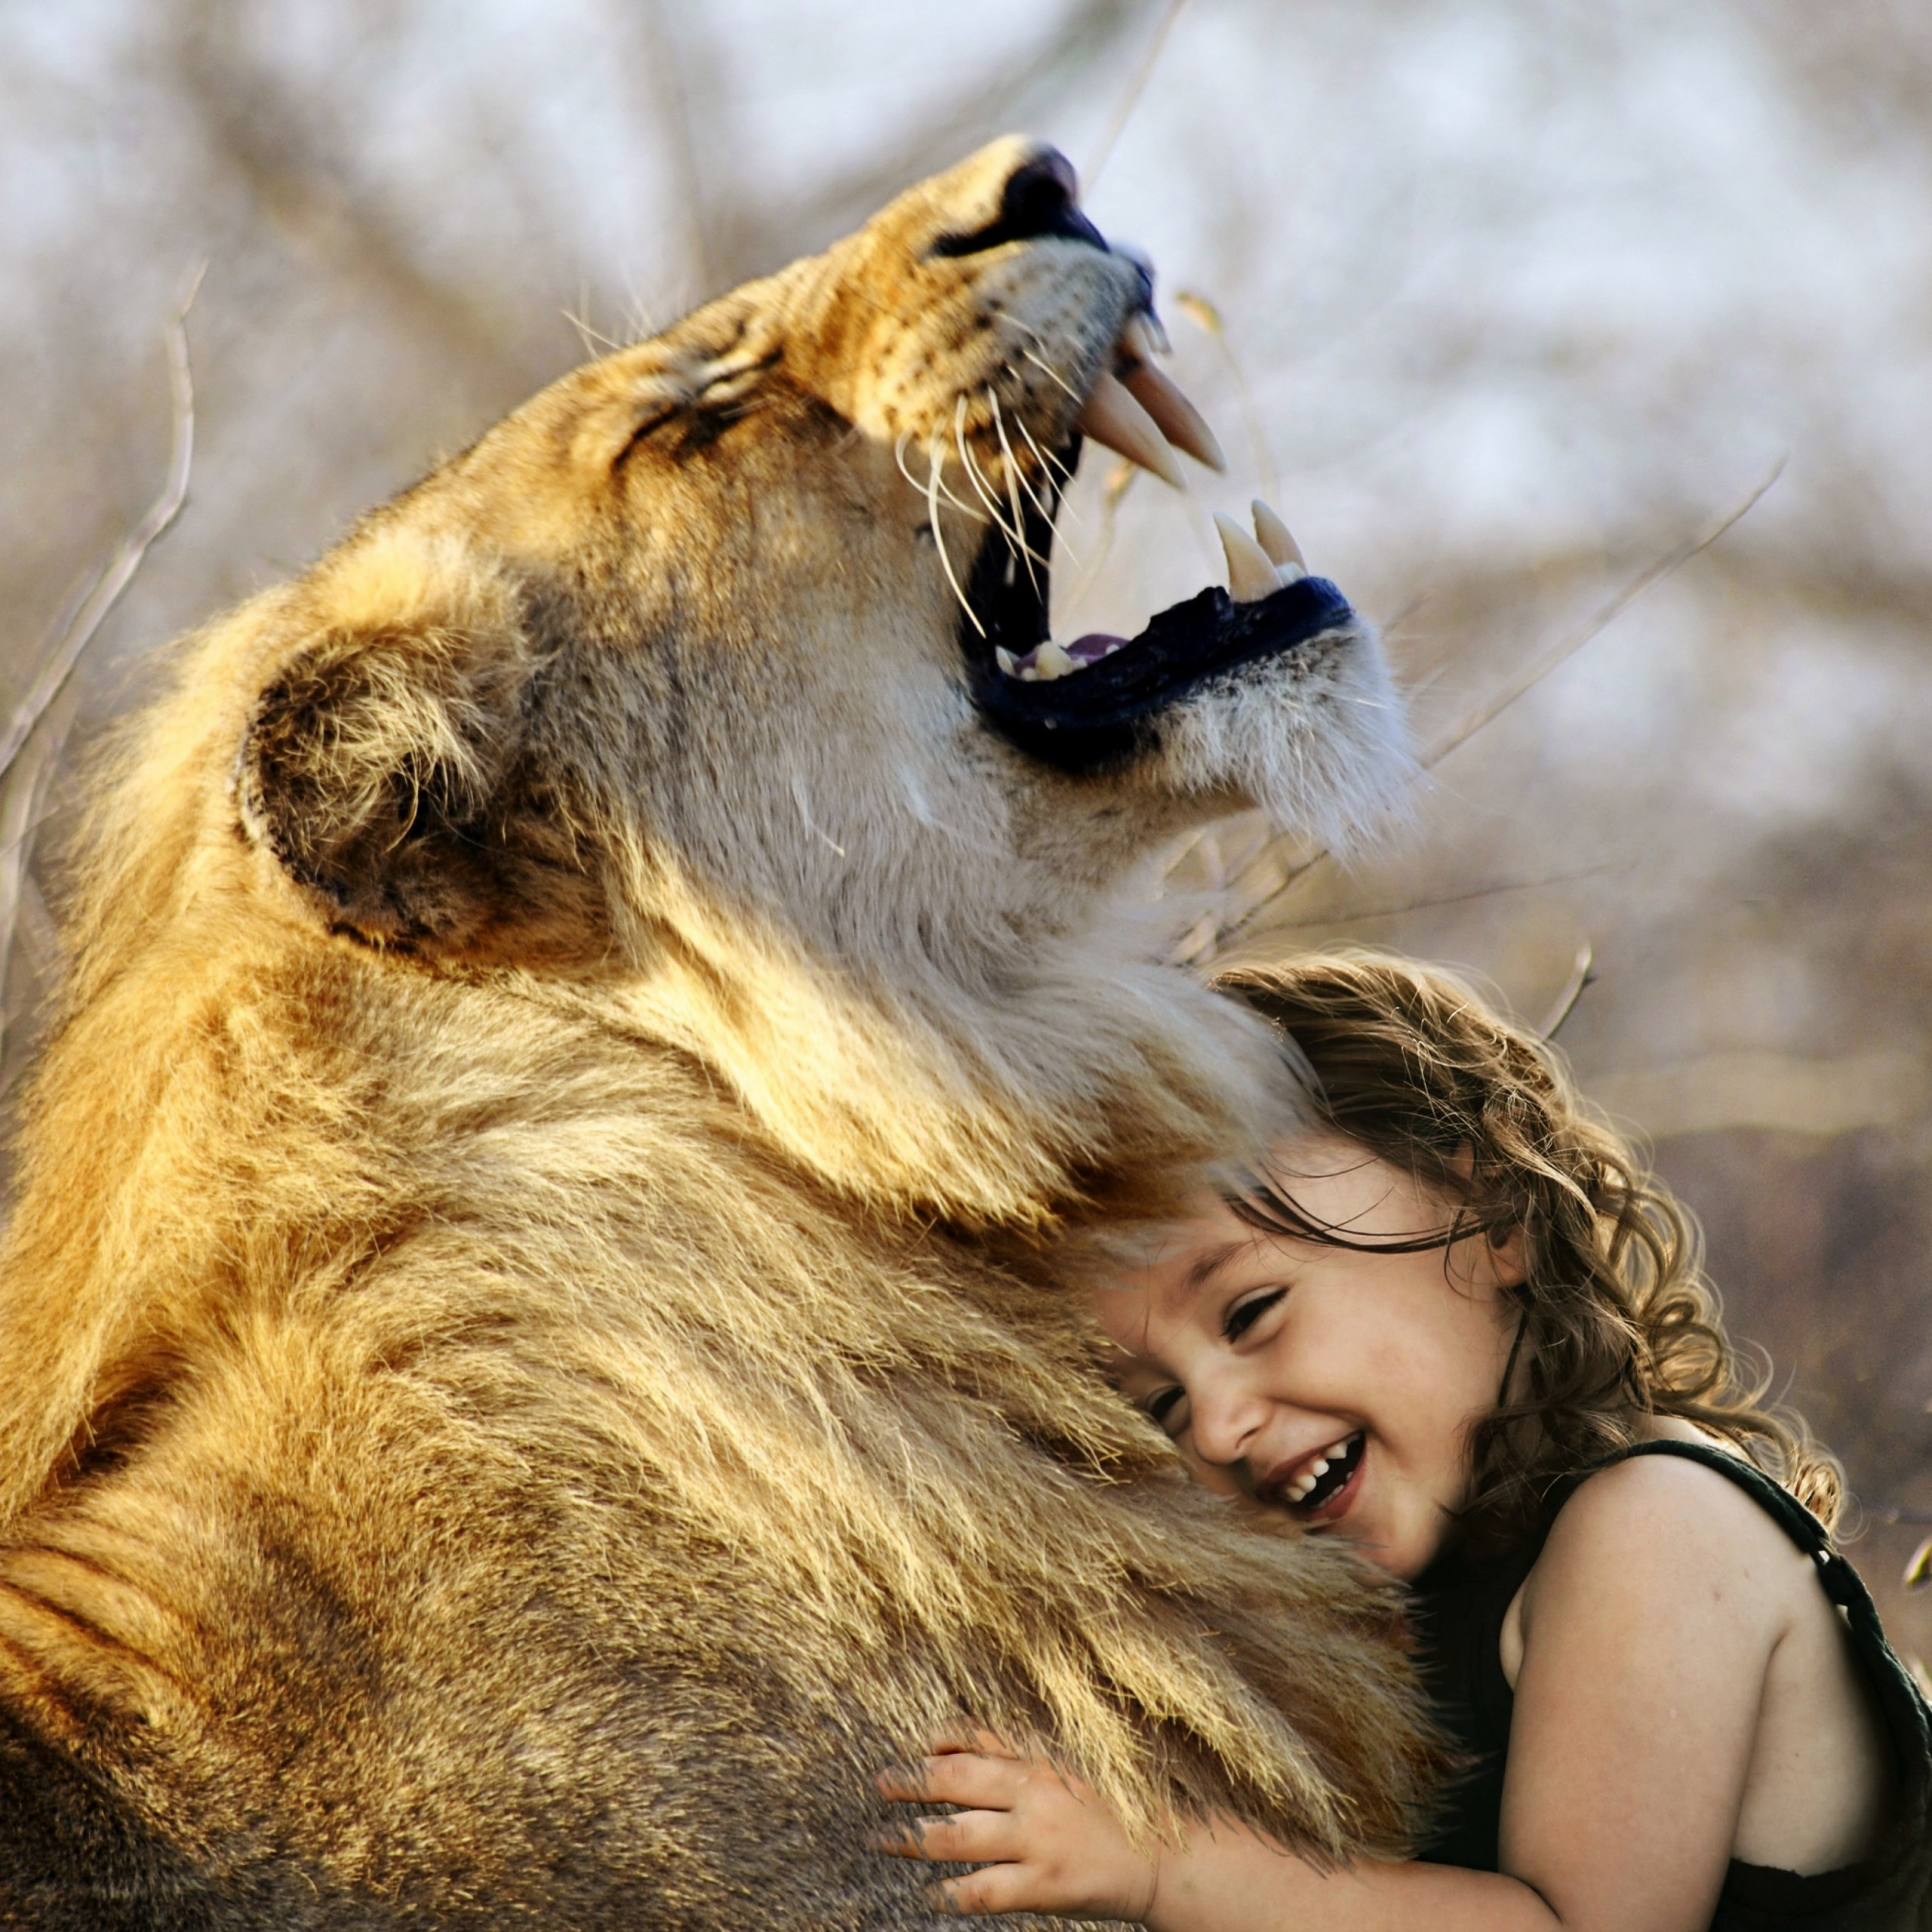 lion cute girl cute child laughing roaring wild adorable 2732x2732 1124